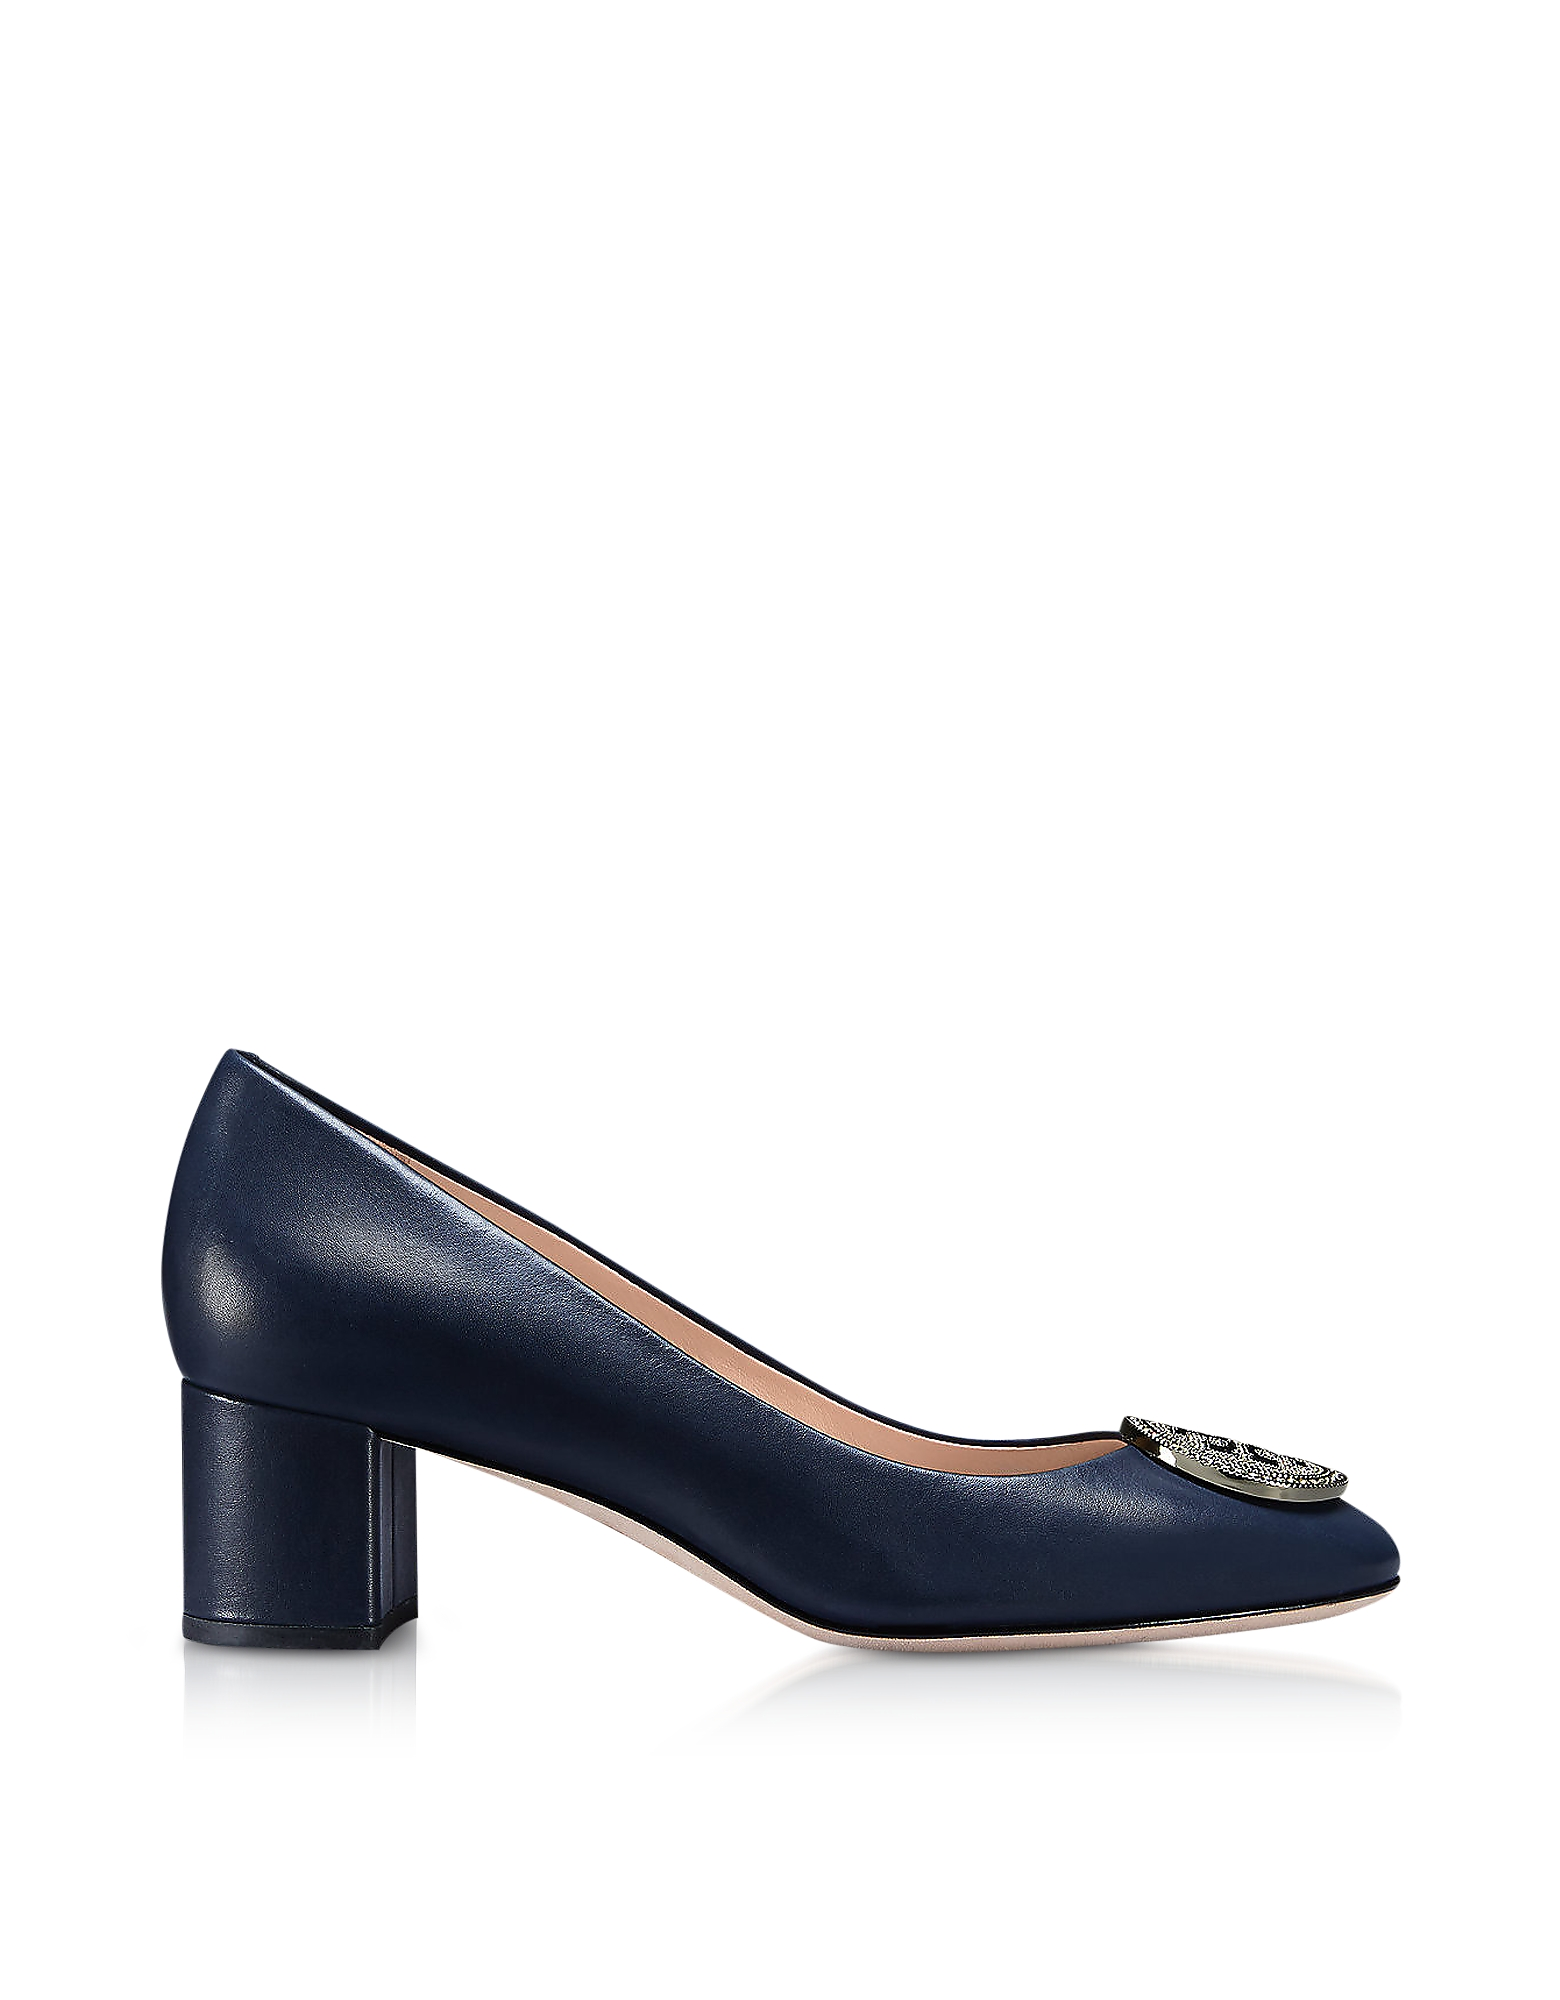 Tory Burch Shoes, Perfect Navy Nappa Leather 45MM Liana Pumps